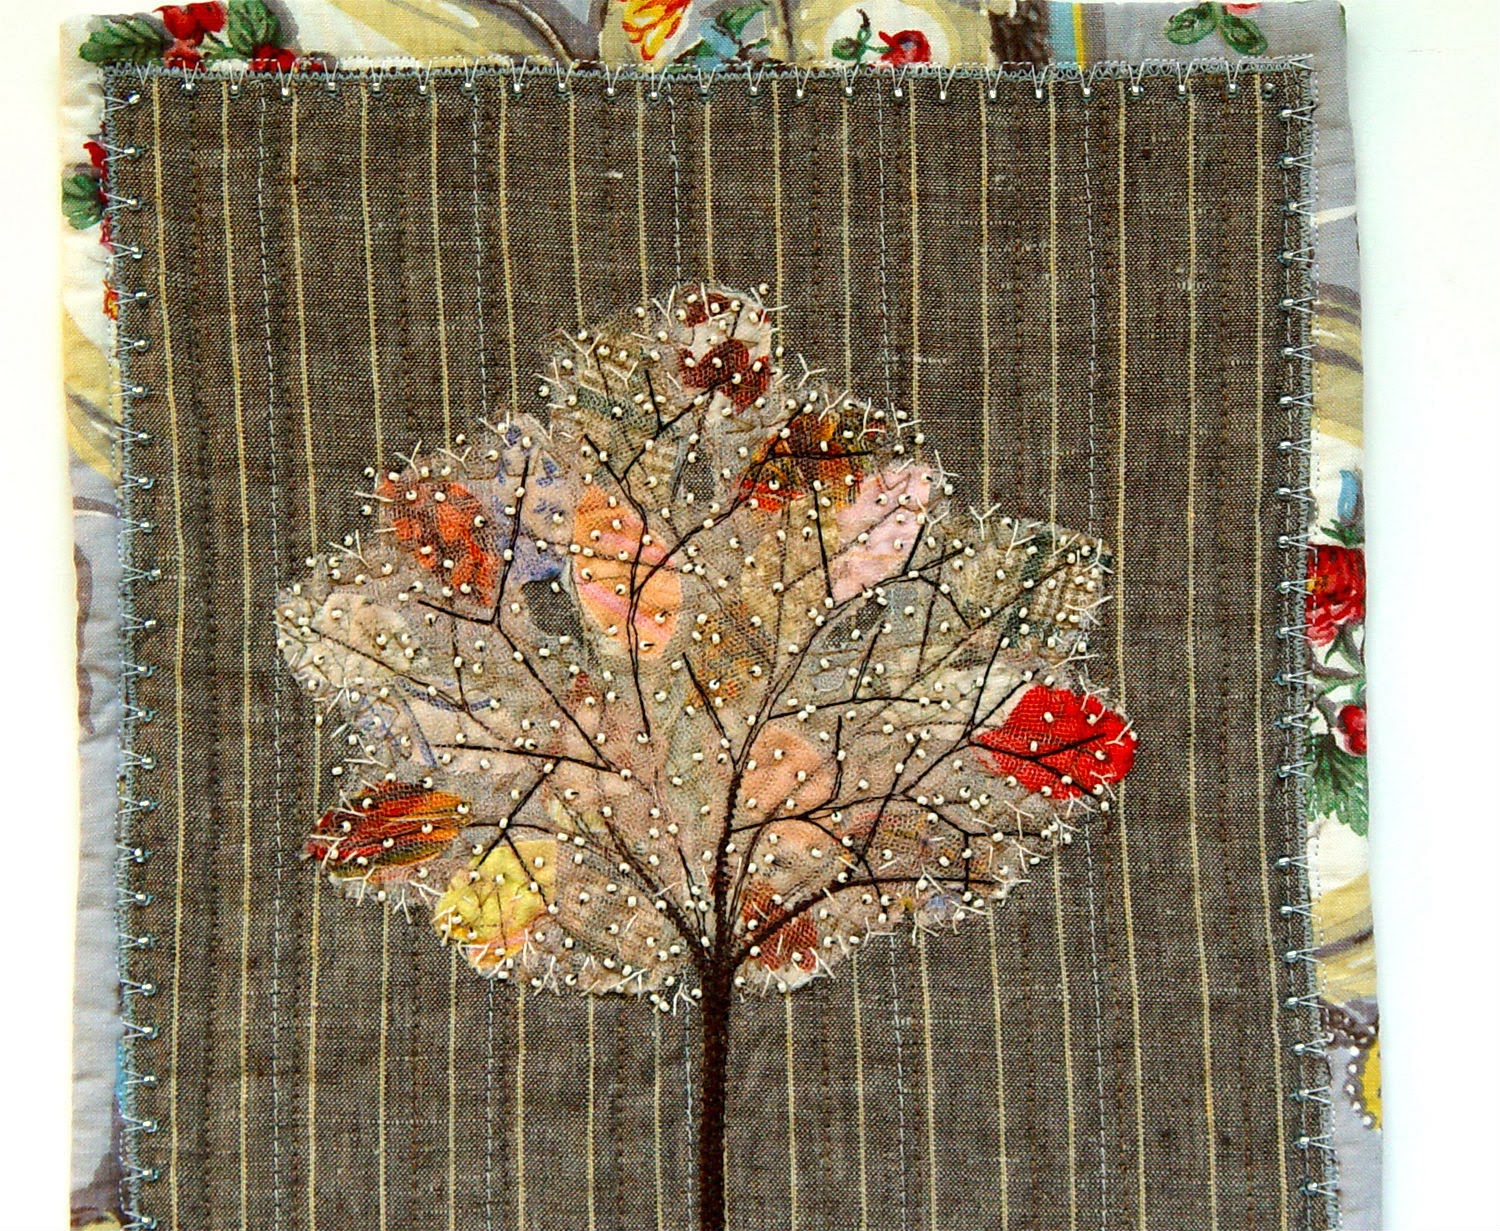 beading on spring tree by bozena wojtaszek